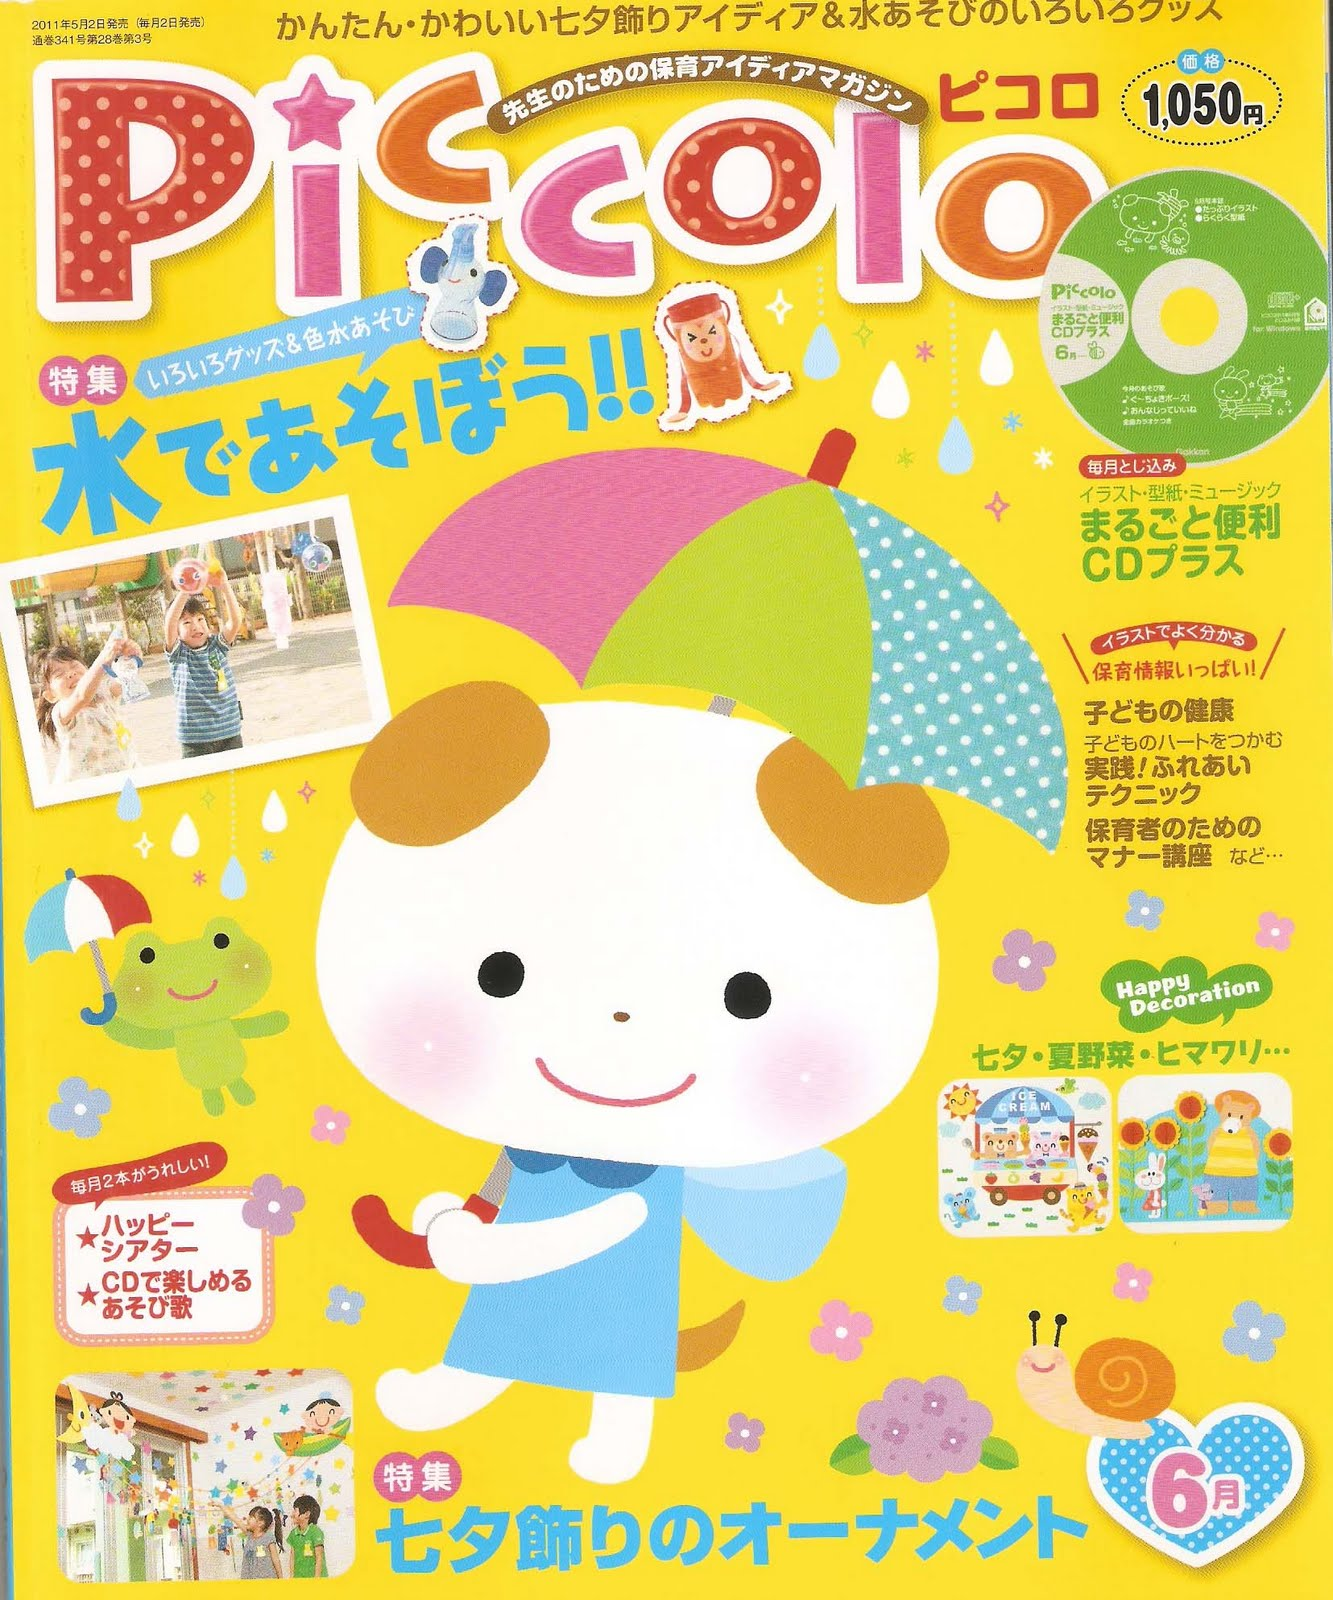 Piccolo Magazine http://zakkalife.blogspot.com/2011/07/piccolo-japanese-kid-craft-magazine.html